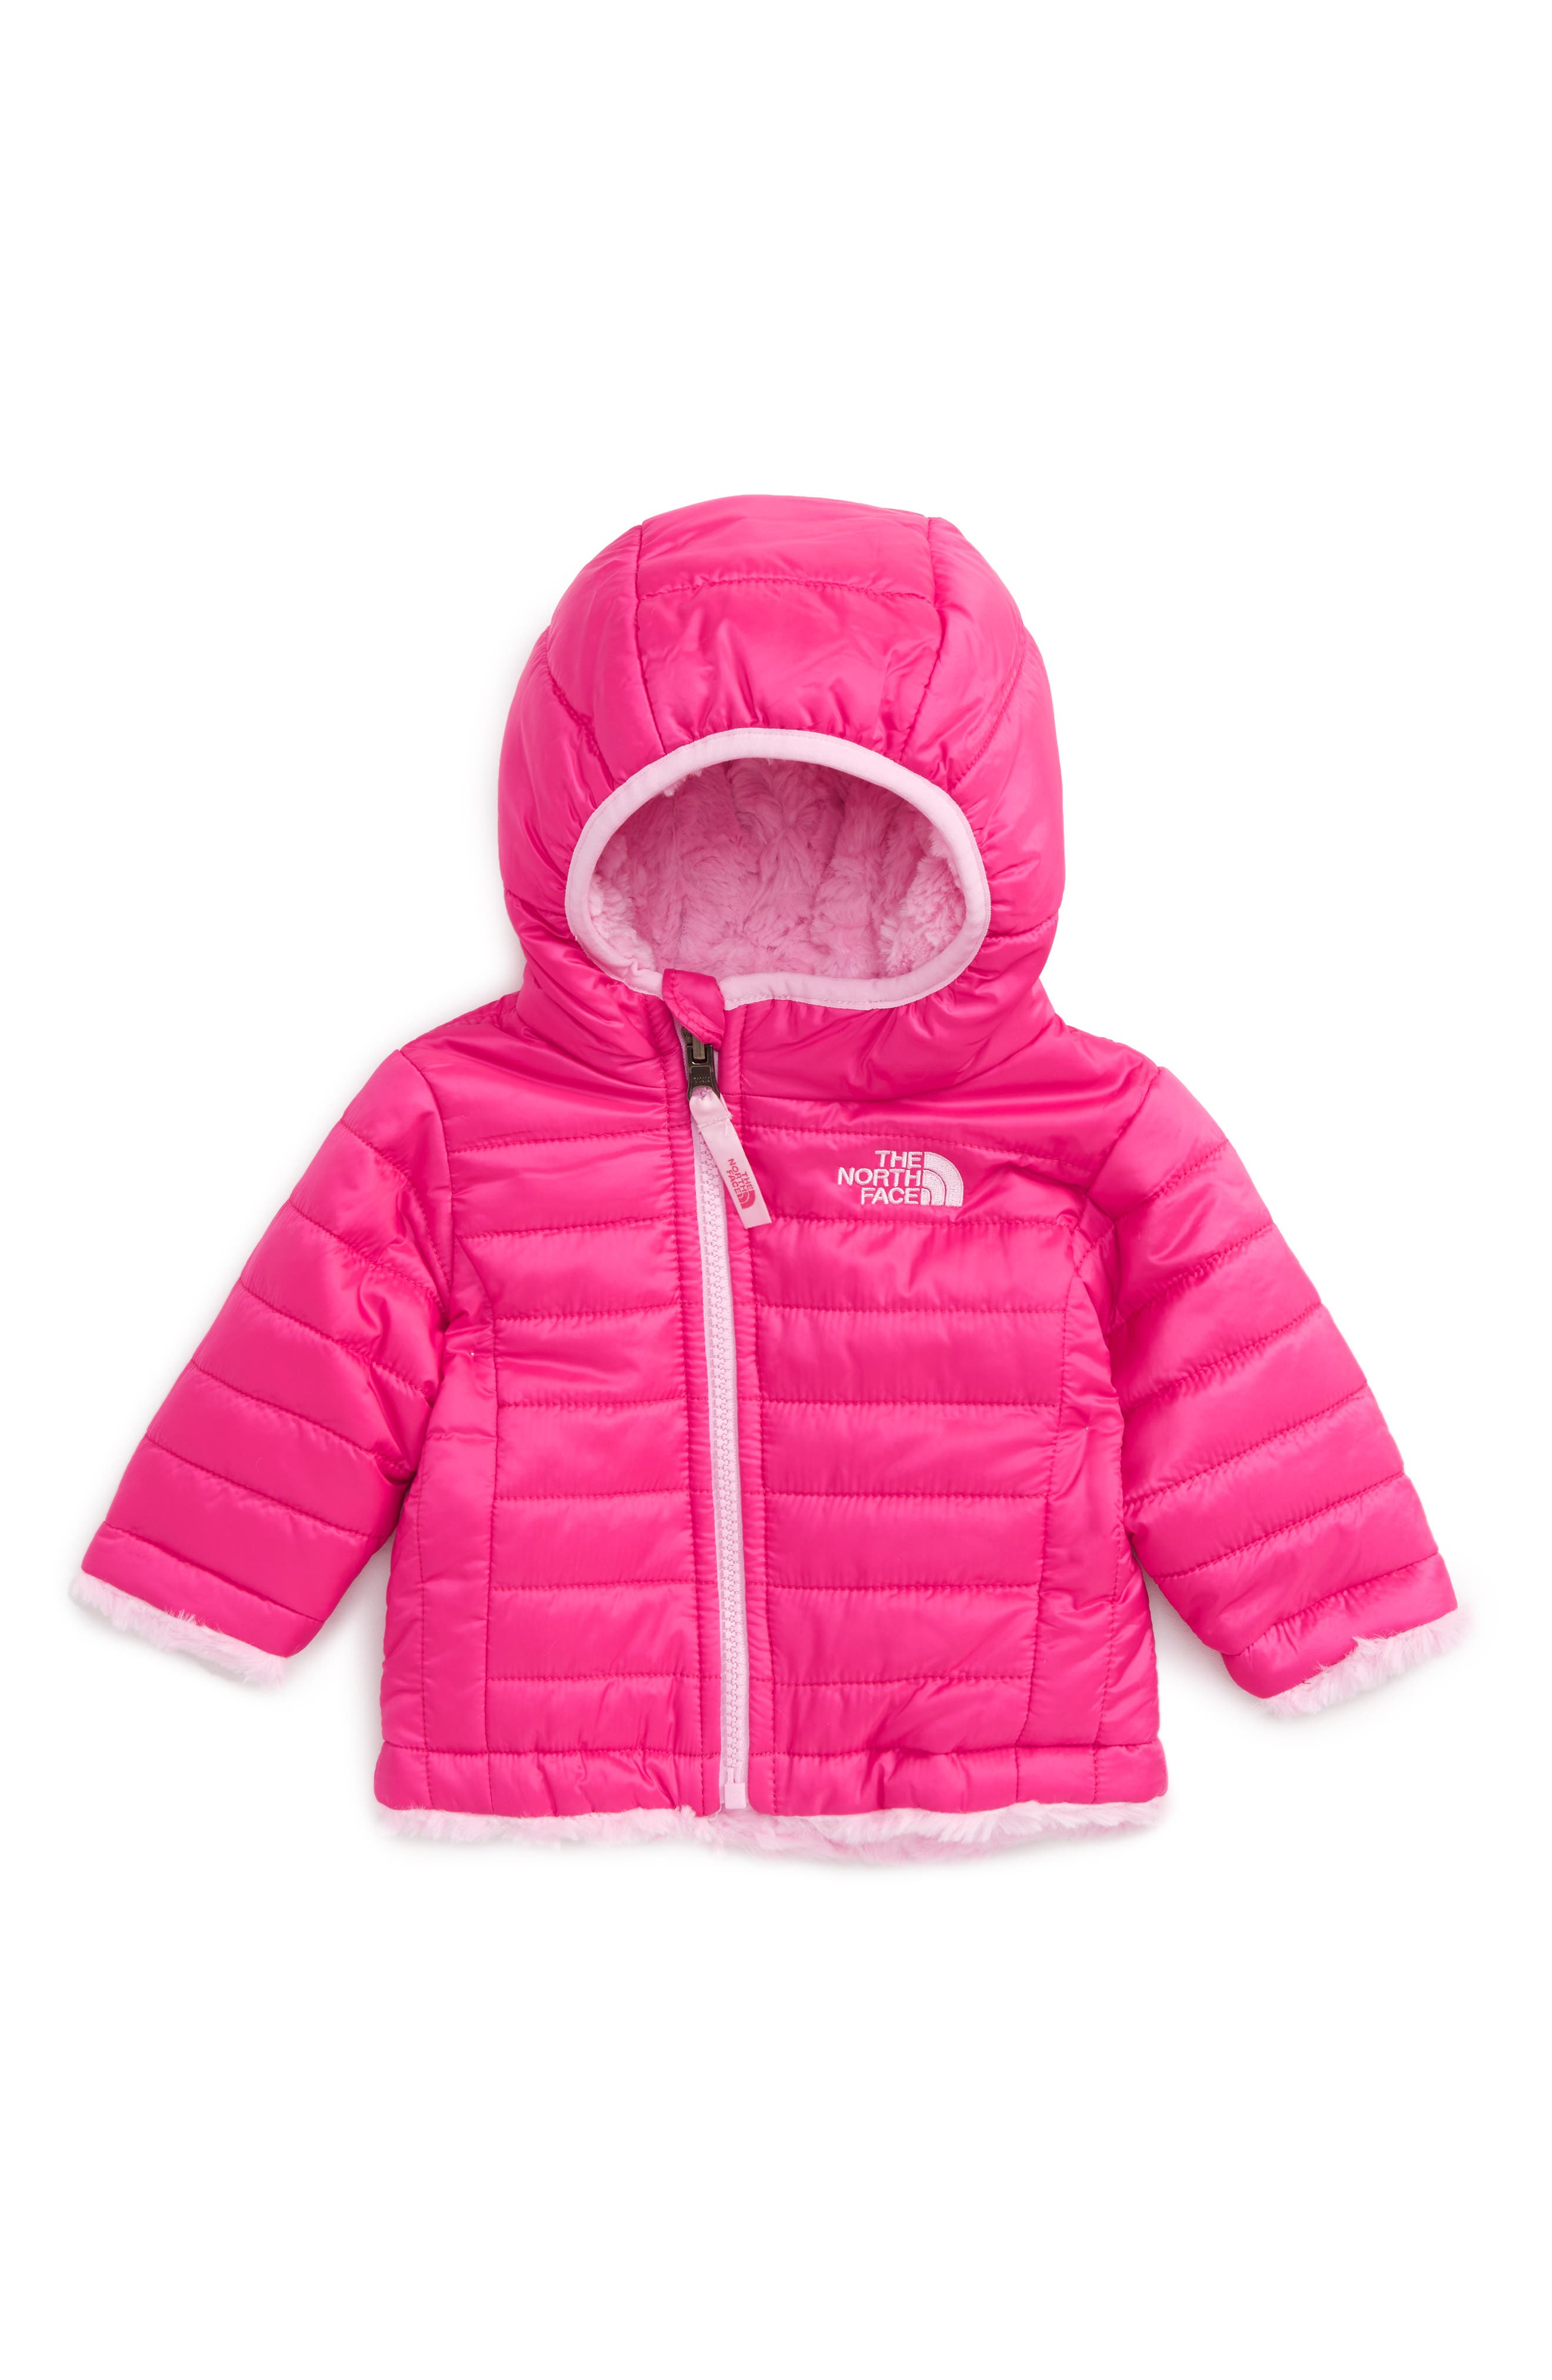 Alternate Image 1 Selected - The North Face 'Mossbud' Reversible Water Repellent Jacket (Baby Girls)